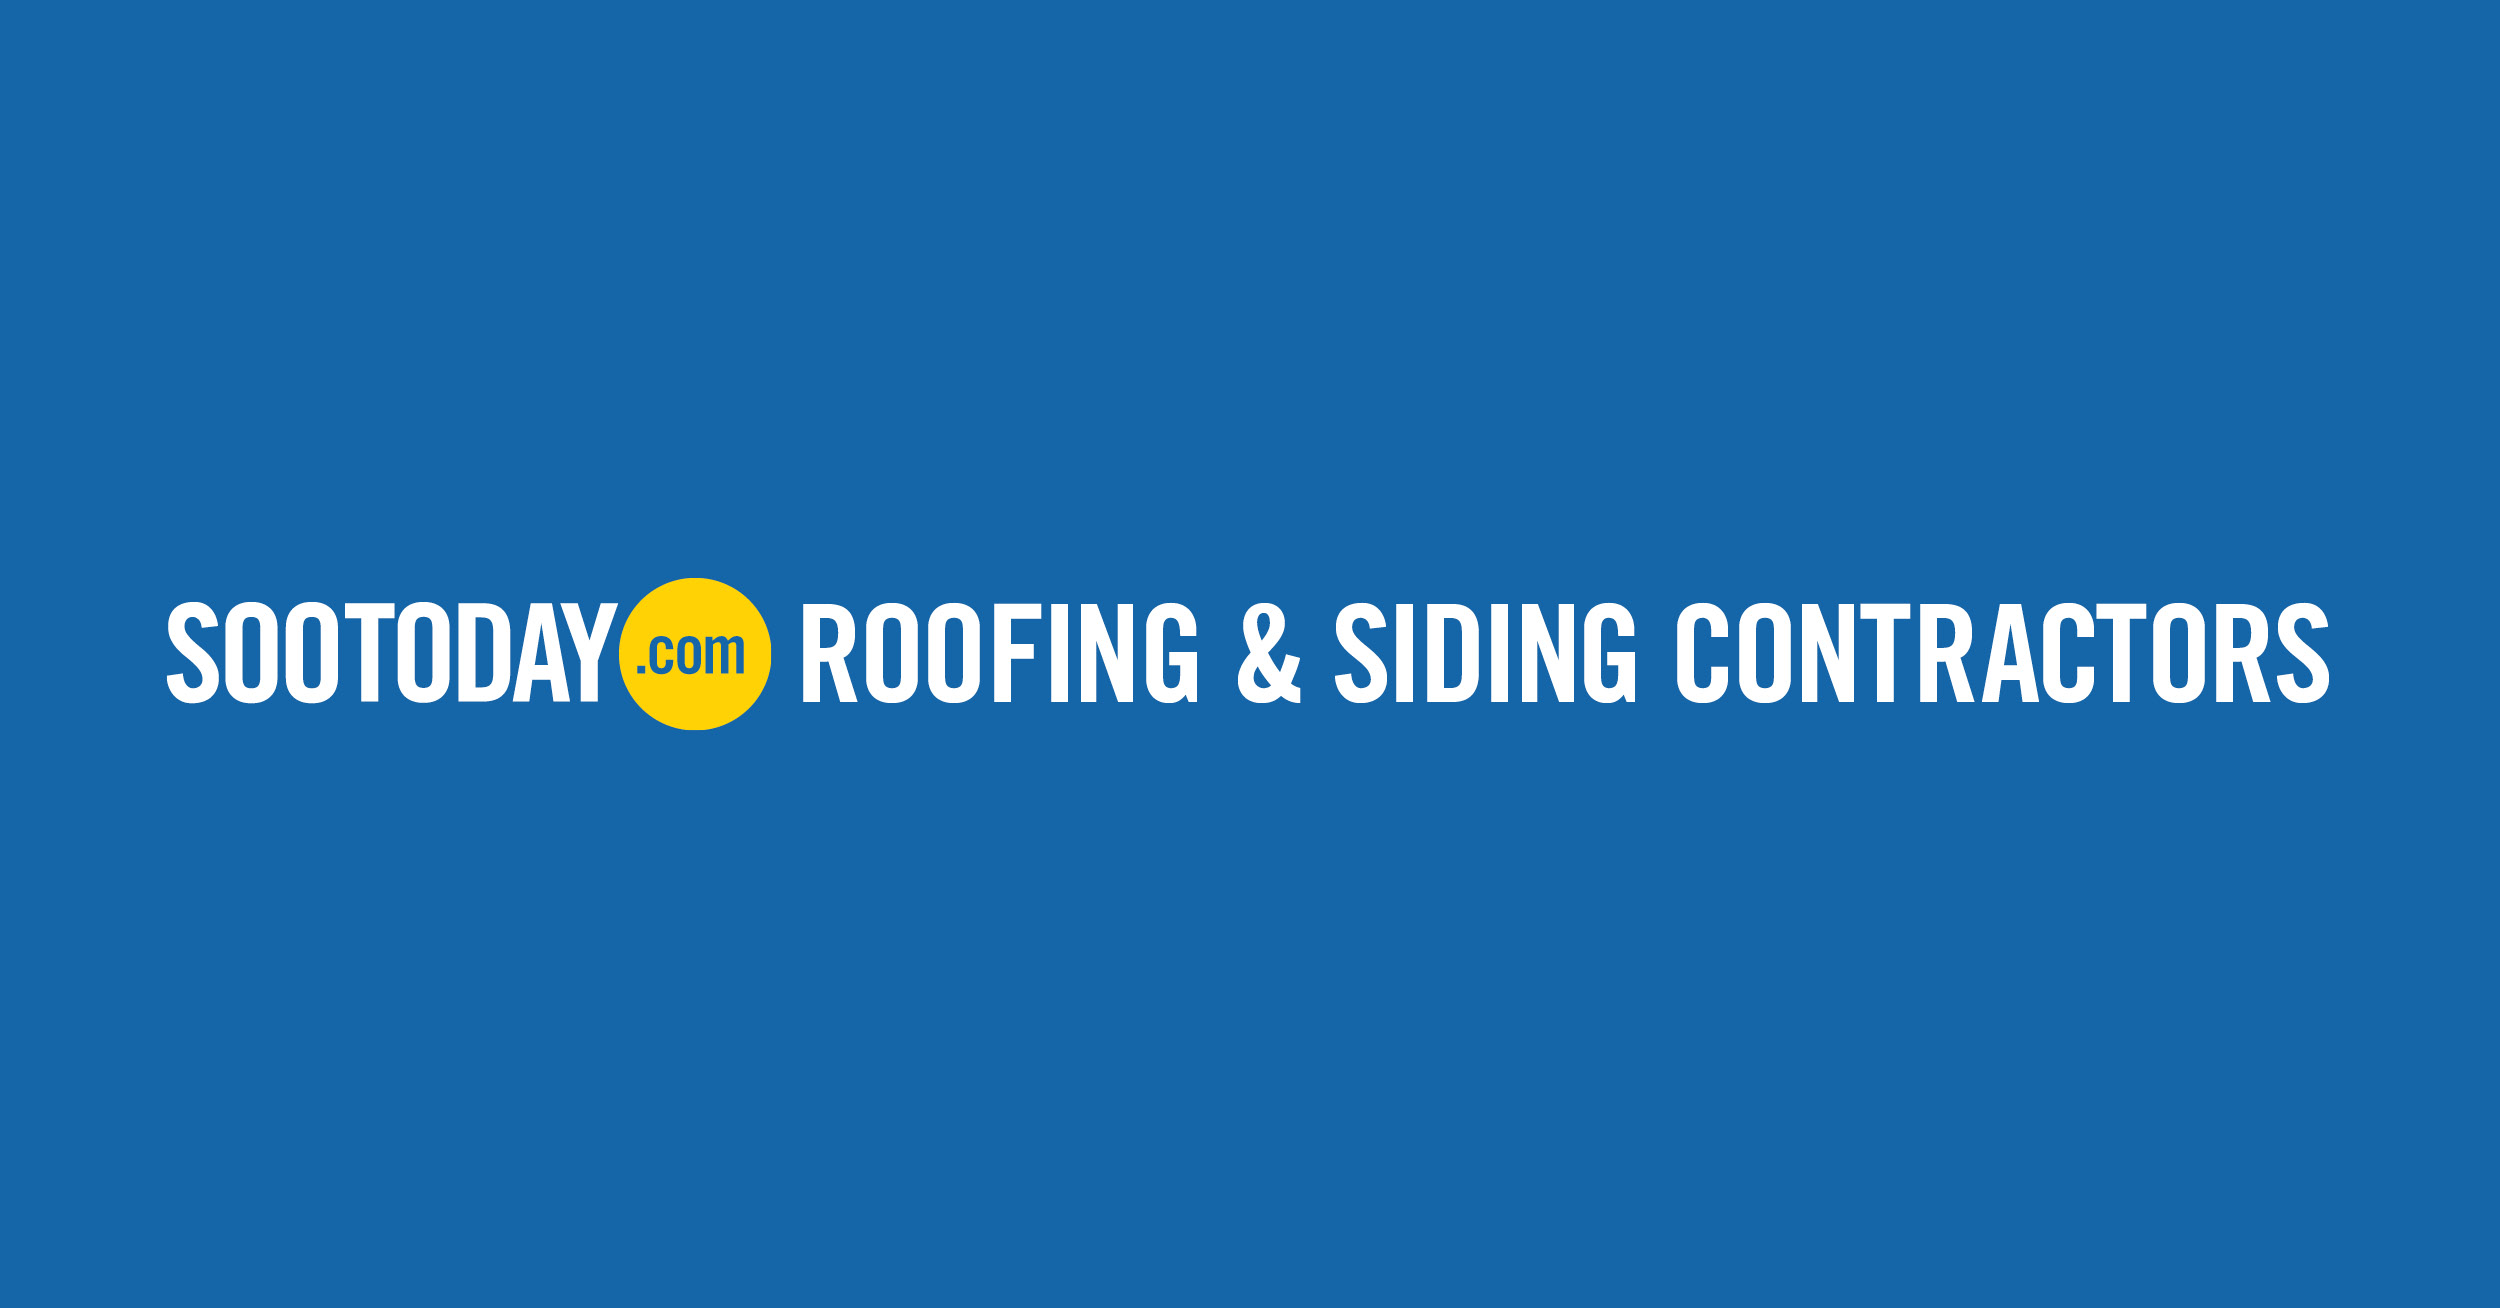 Sault Ste Marie Roofing And Siding Contractors Sootoday Com